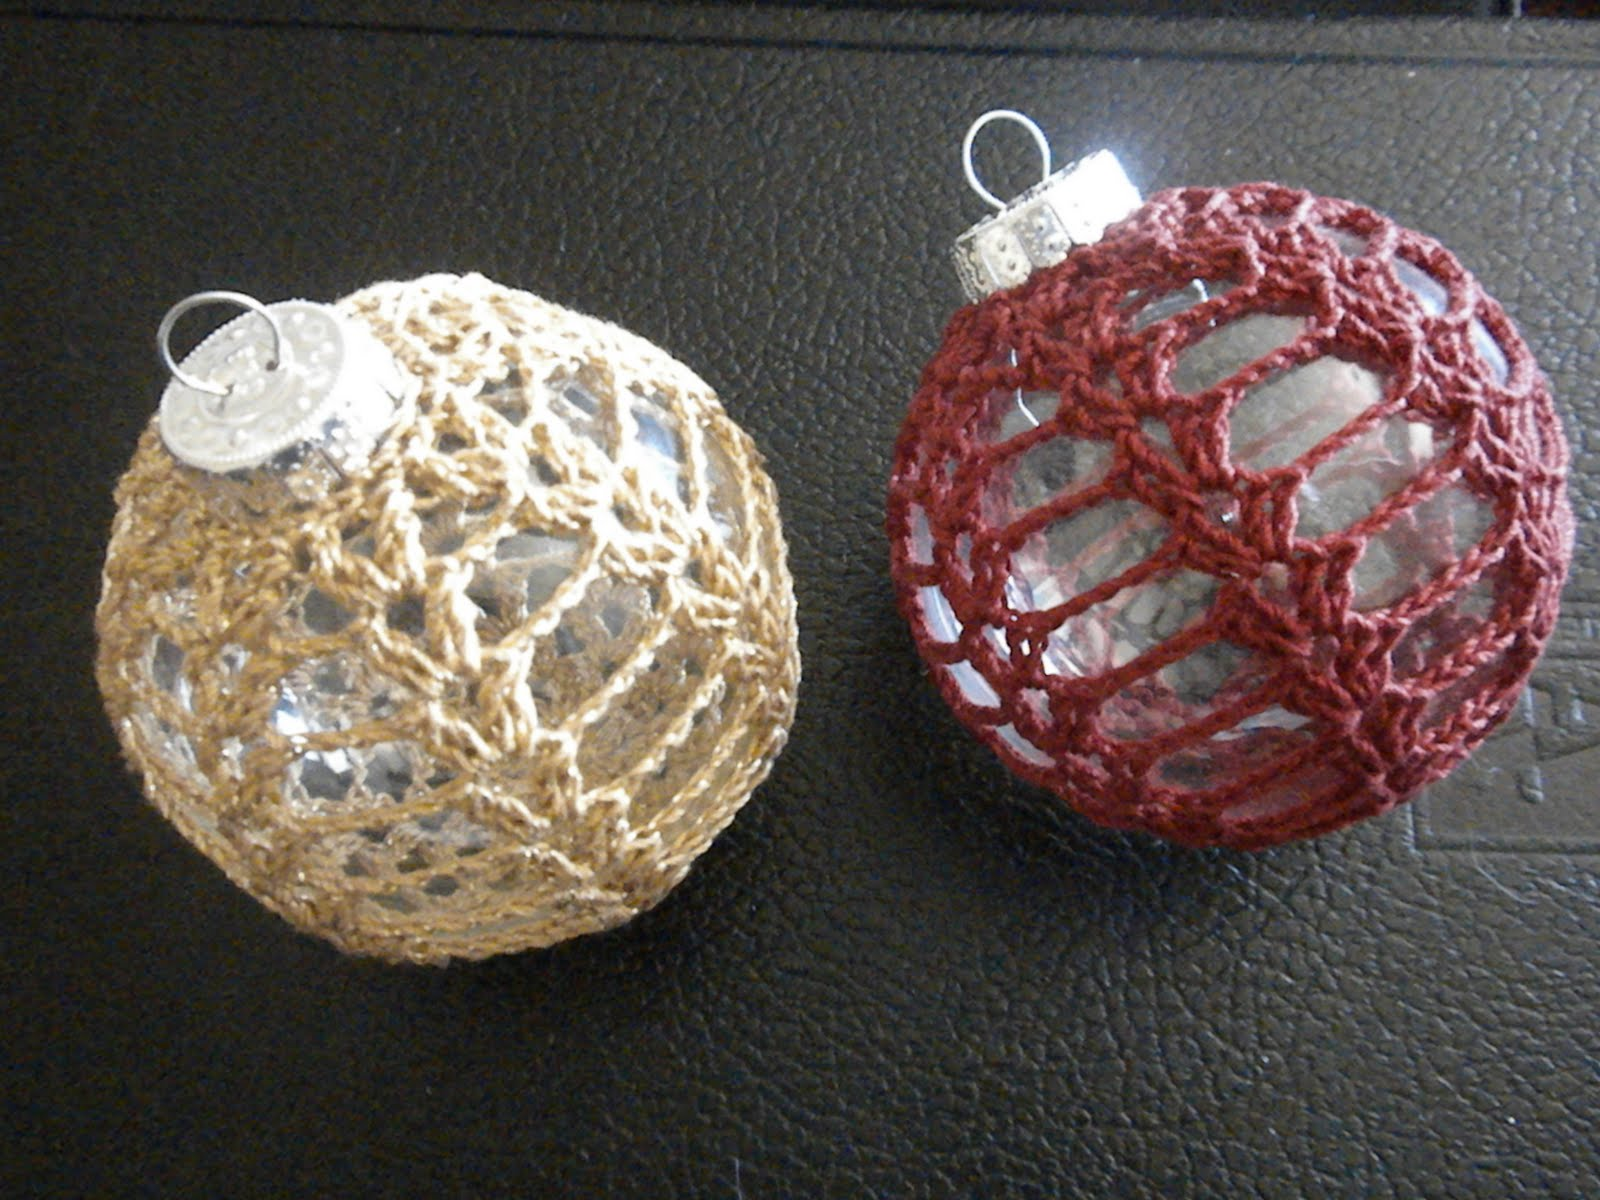 Smiles: Crochet Christmas Ornament